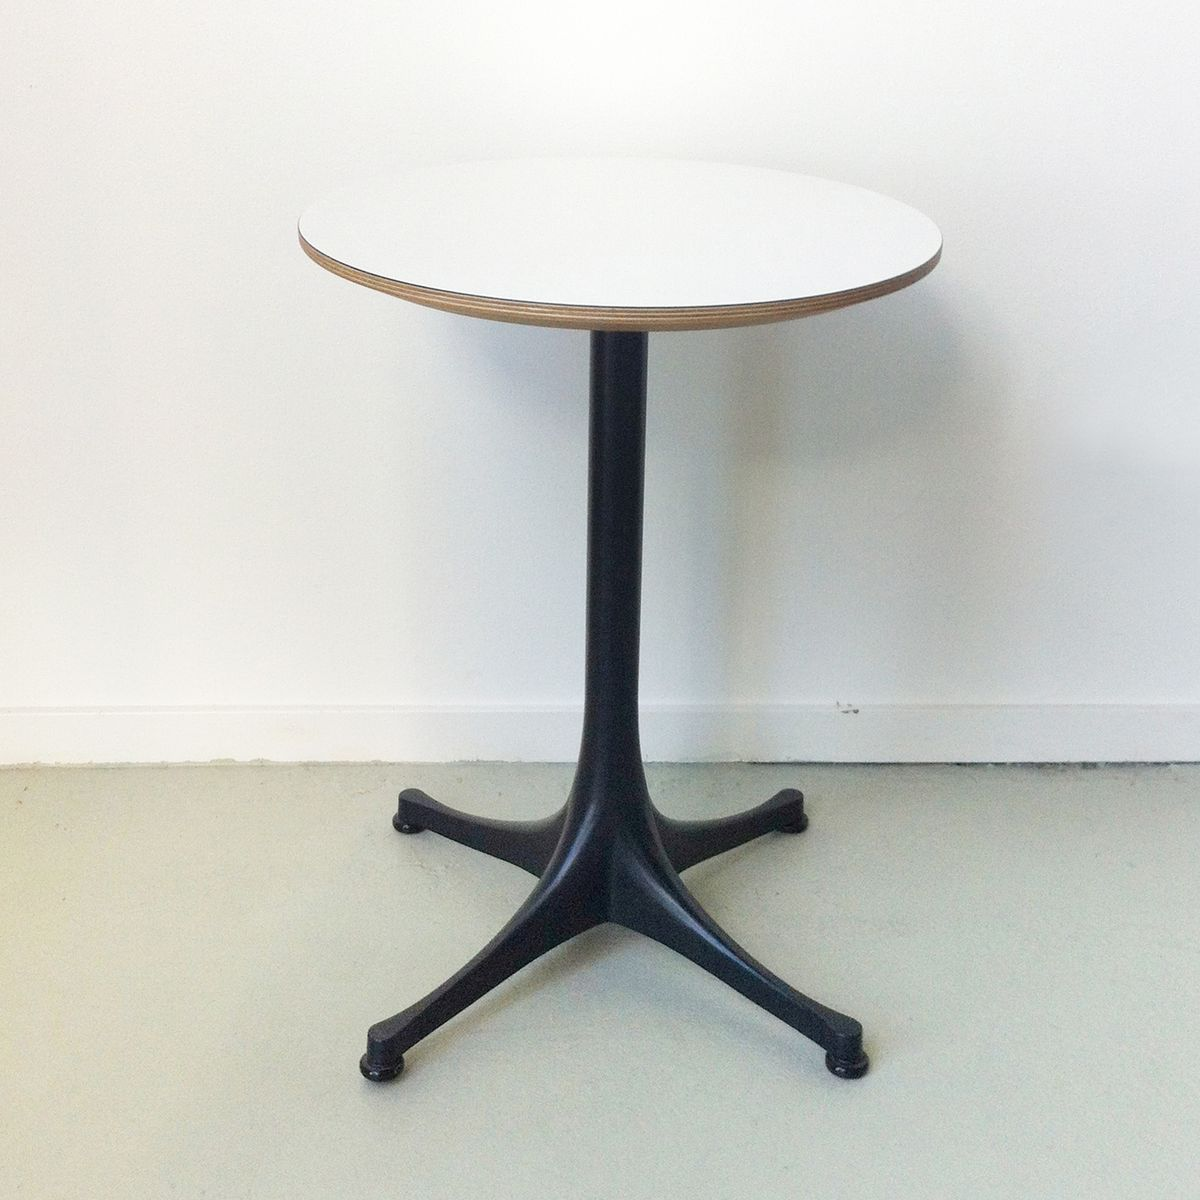 Vintage Side Table by George Nelson For Vitra For Sale at Pamono